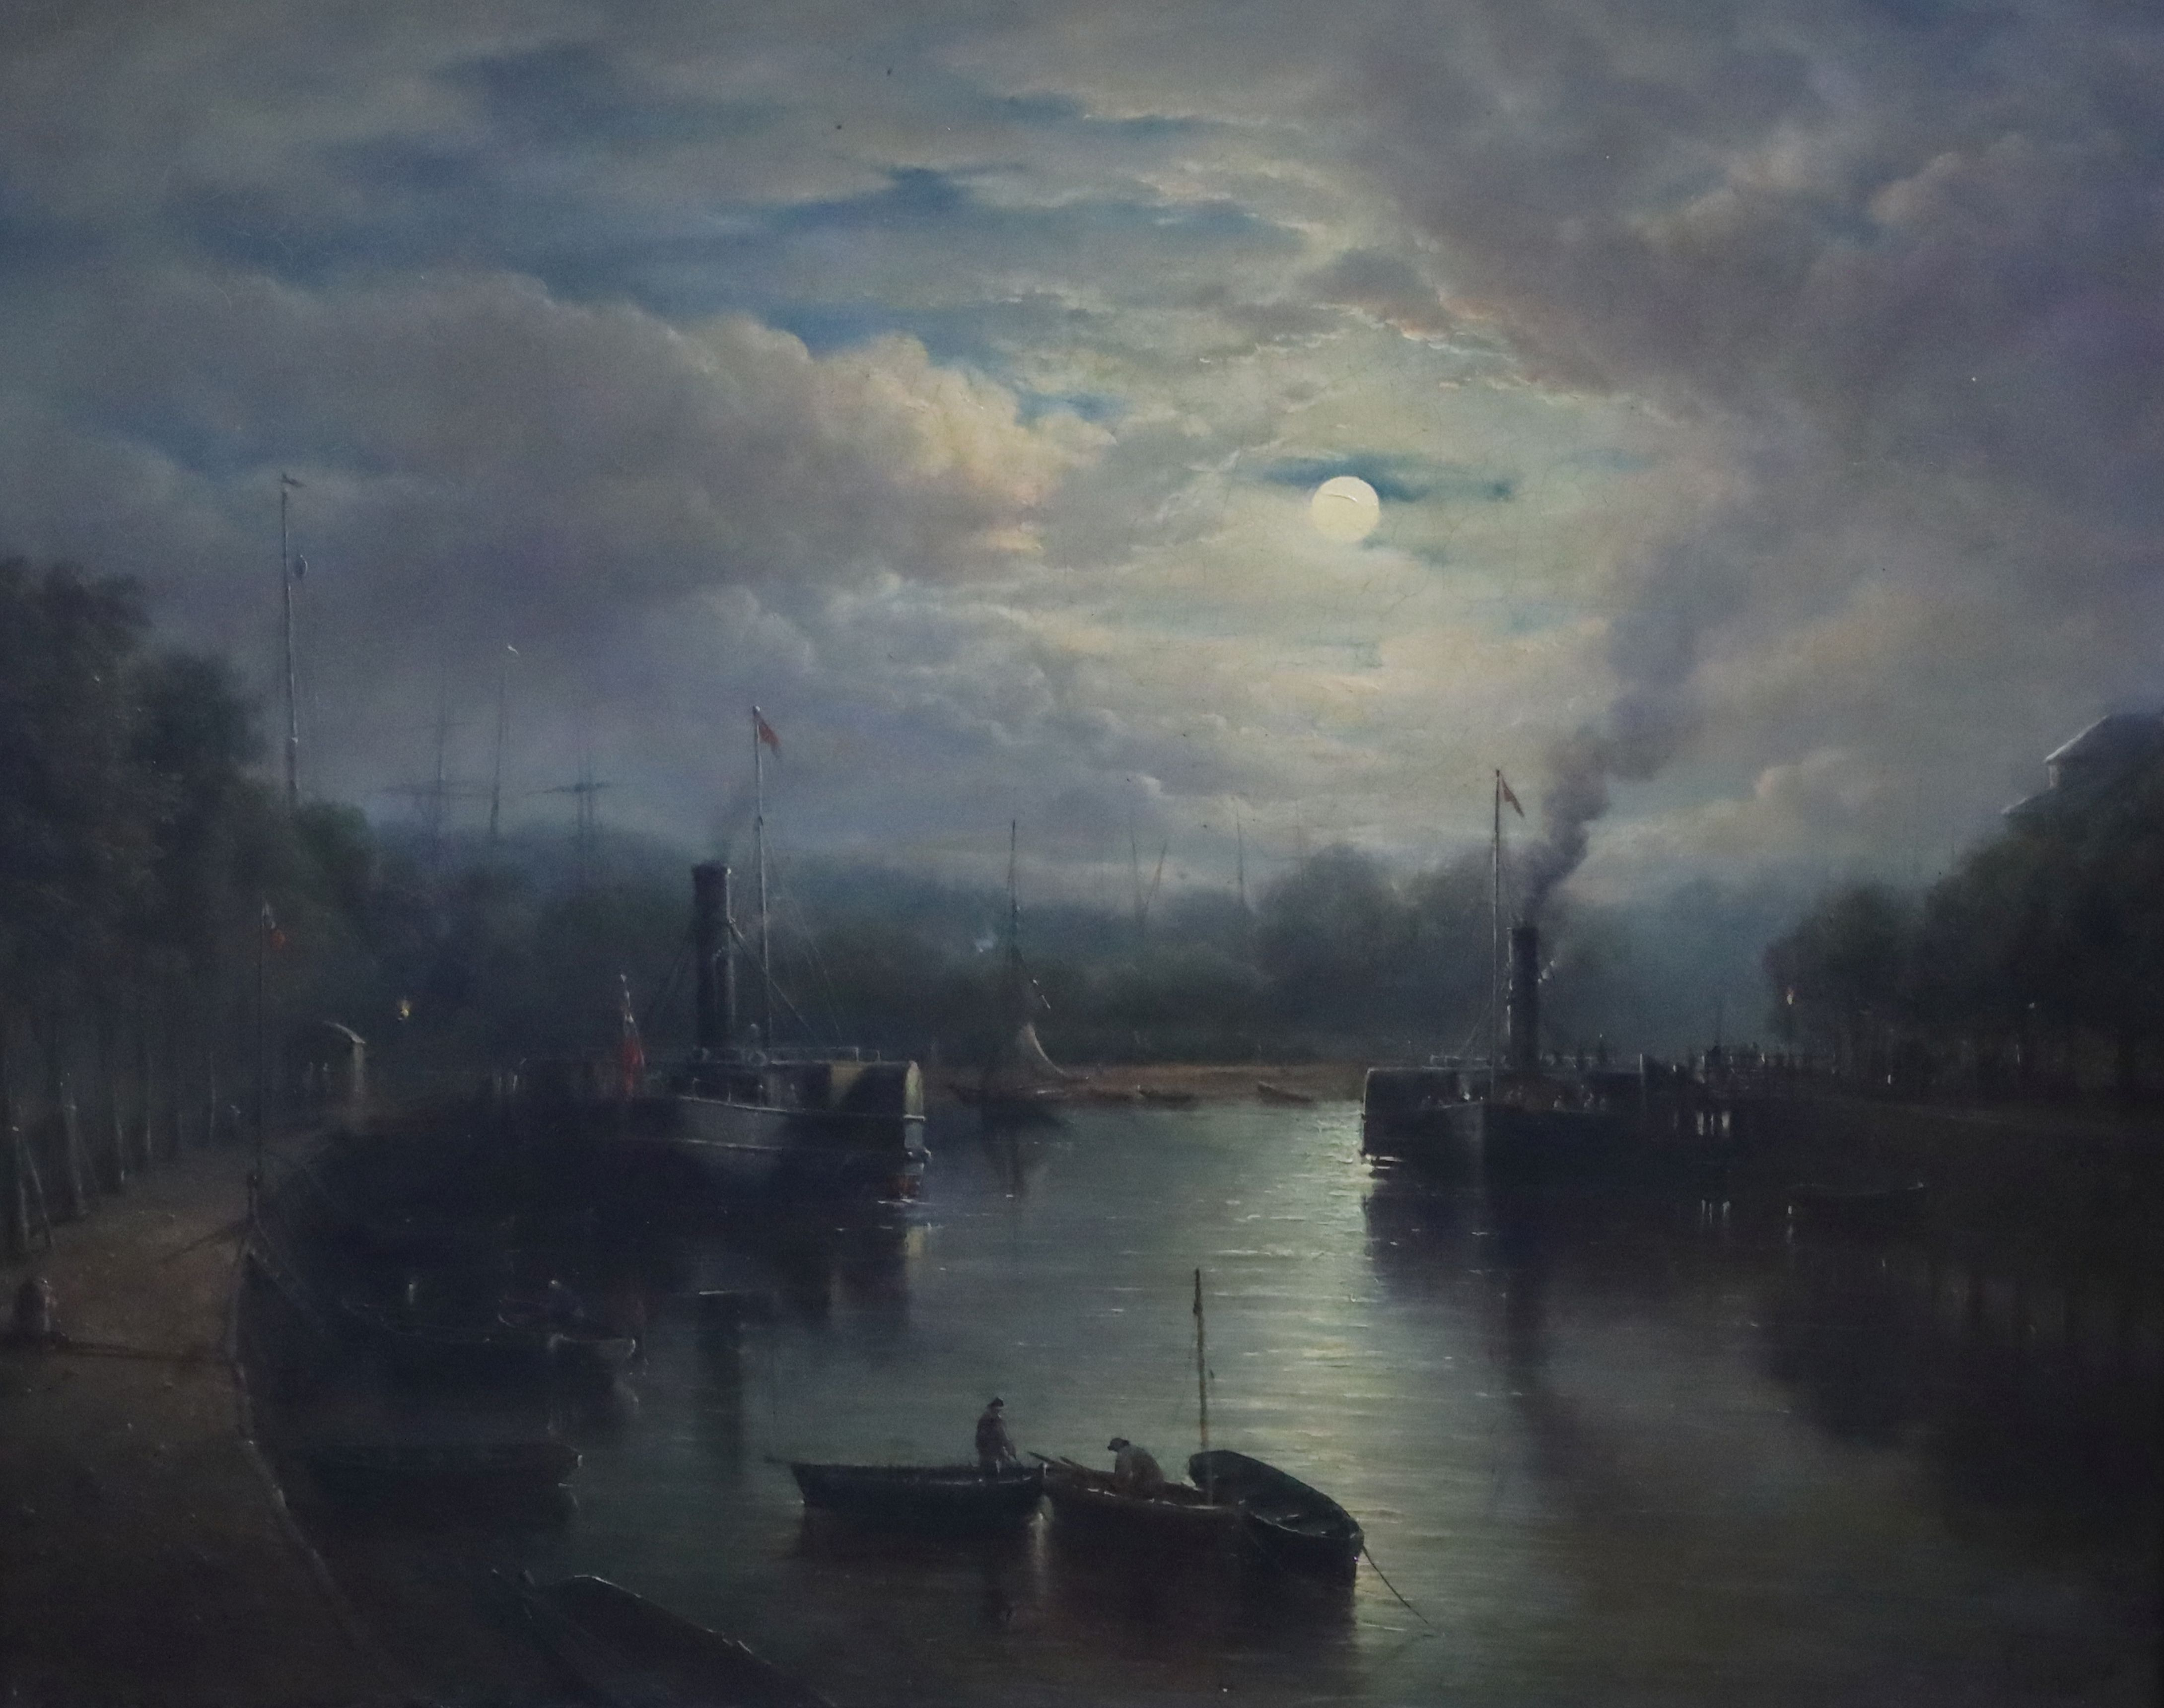 Lot 592 - John Moore of Ipswich (1820-1902)oil on wooden panelLanding Stage, New Cutsigned, label verso,16 x